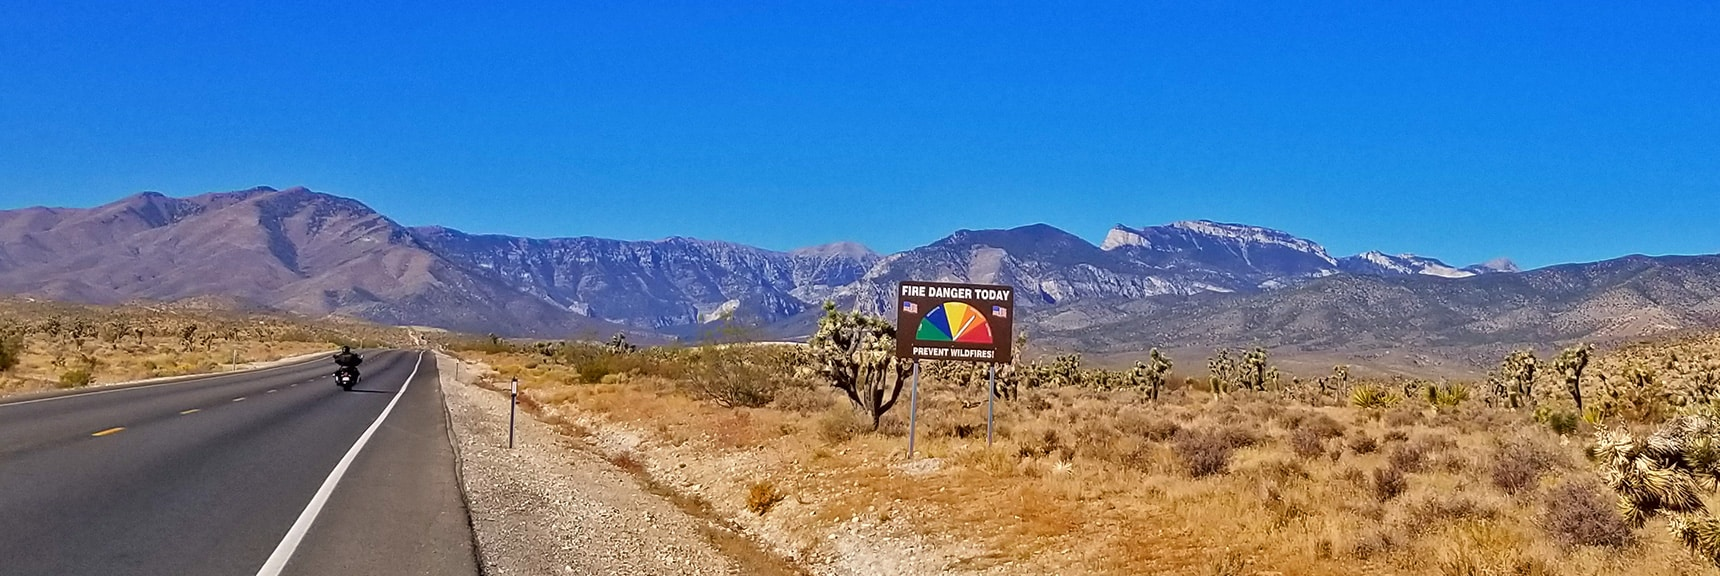 Closing in on the Spring Mountains: Mummy, Fletcher and Charleston in View| Harris Springs Canyon | Biking from Centennial Hills | Spring Mountains, Nevada